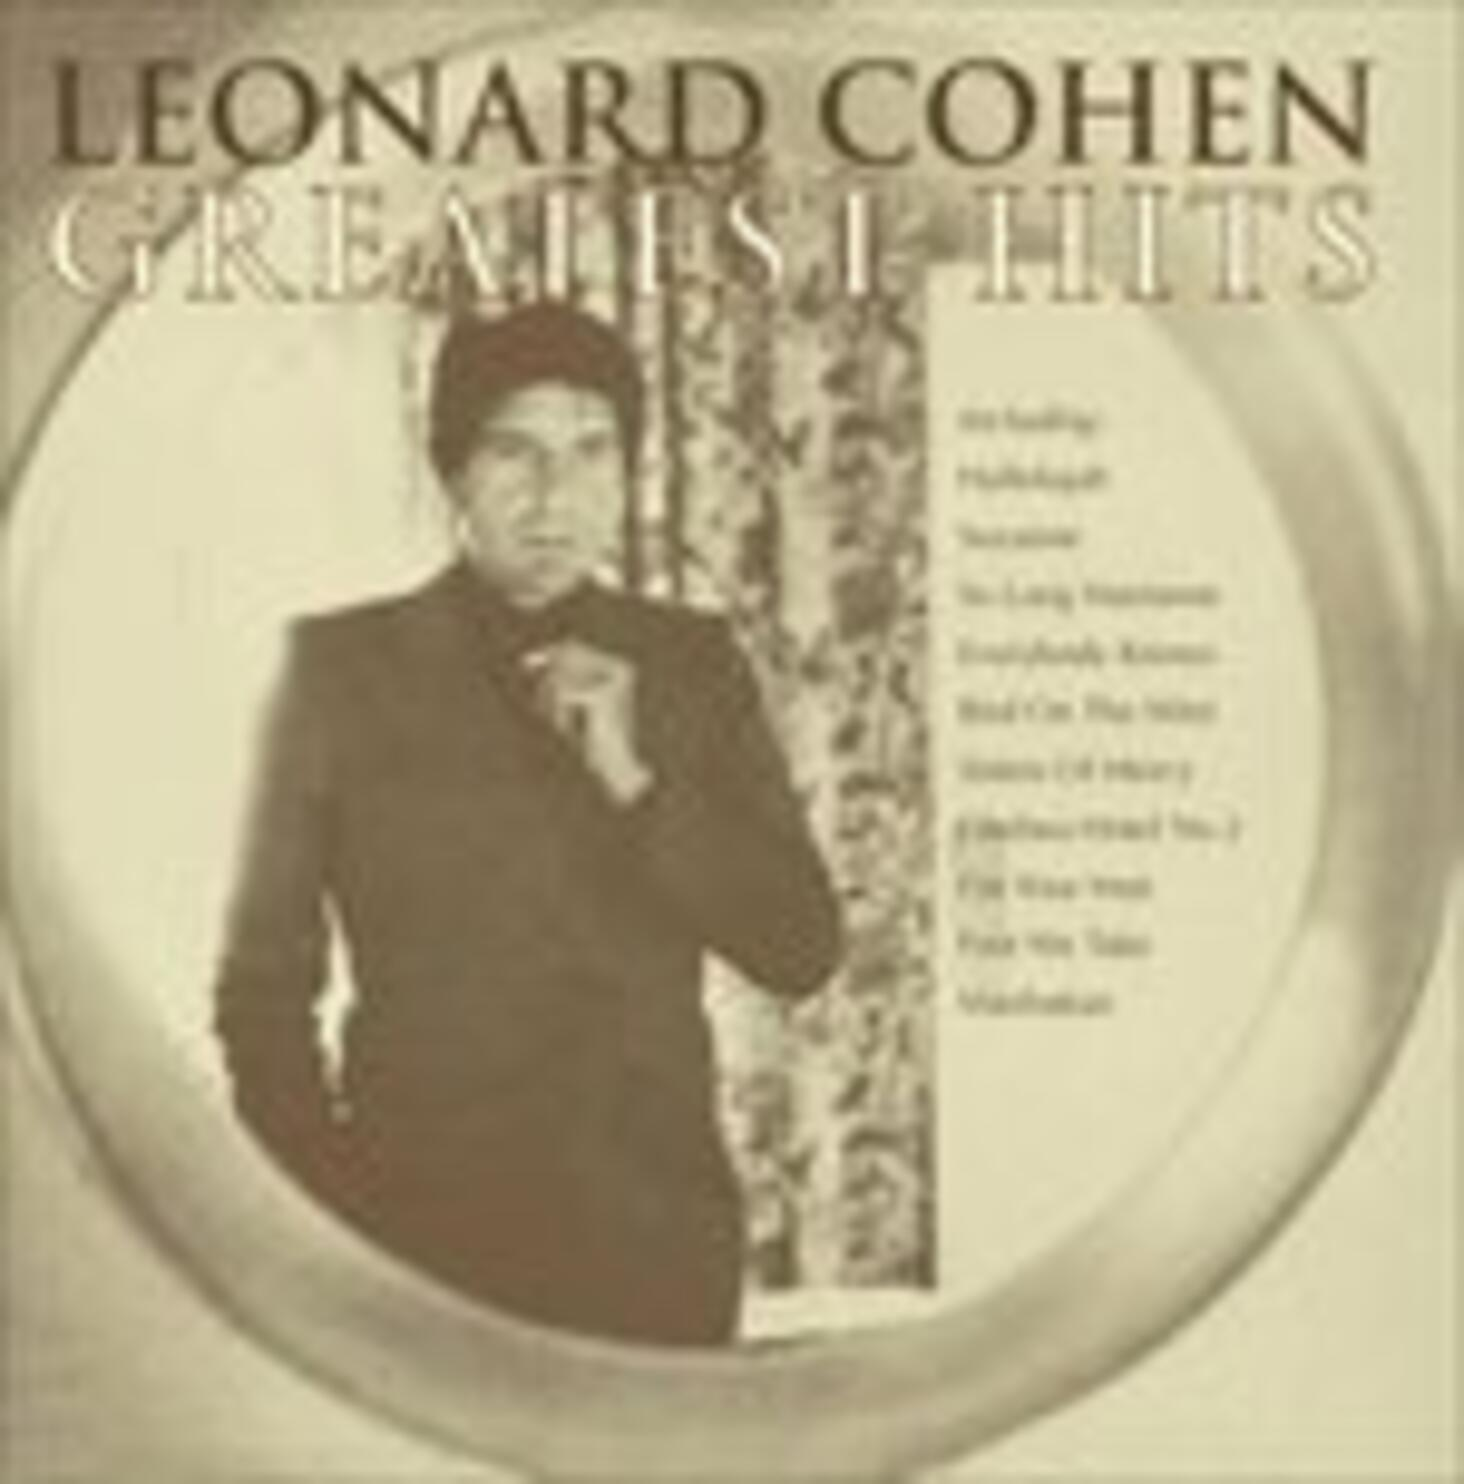 Leonard Cohen Libros Greatest Hits Leonard Cohen Cd Ibs